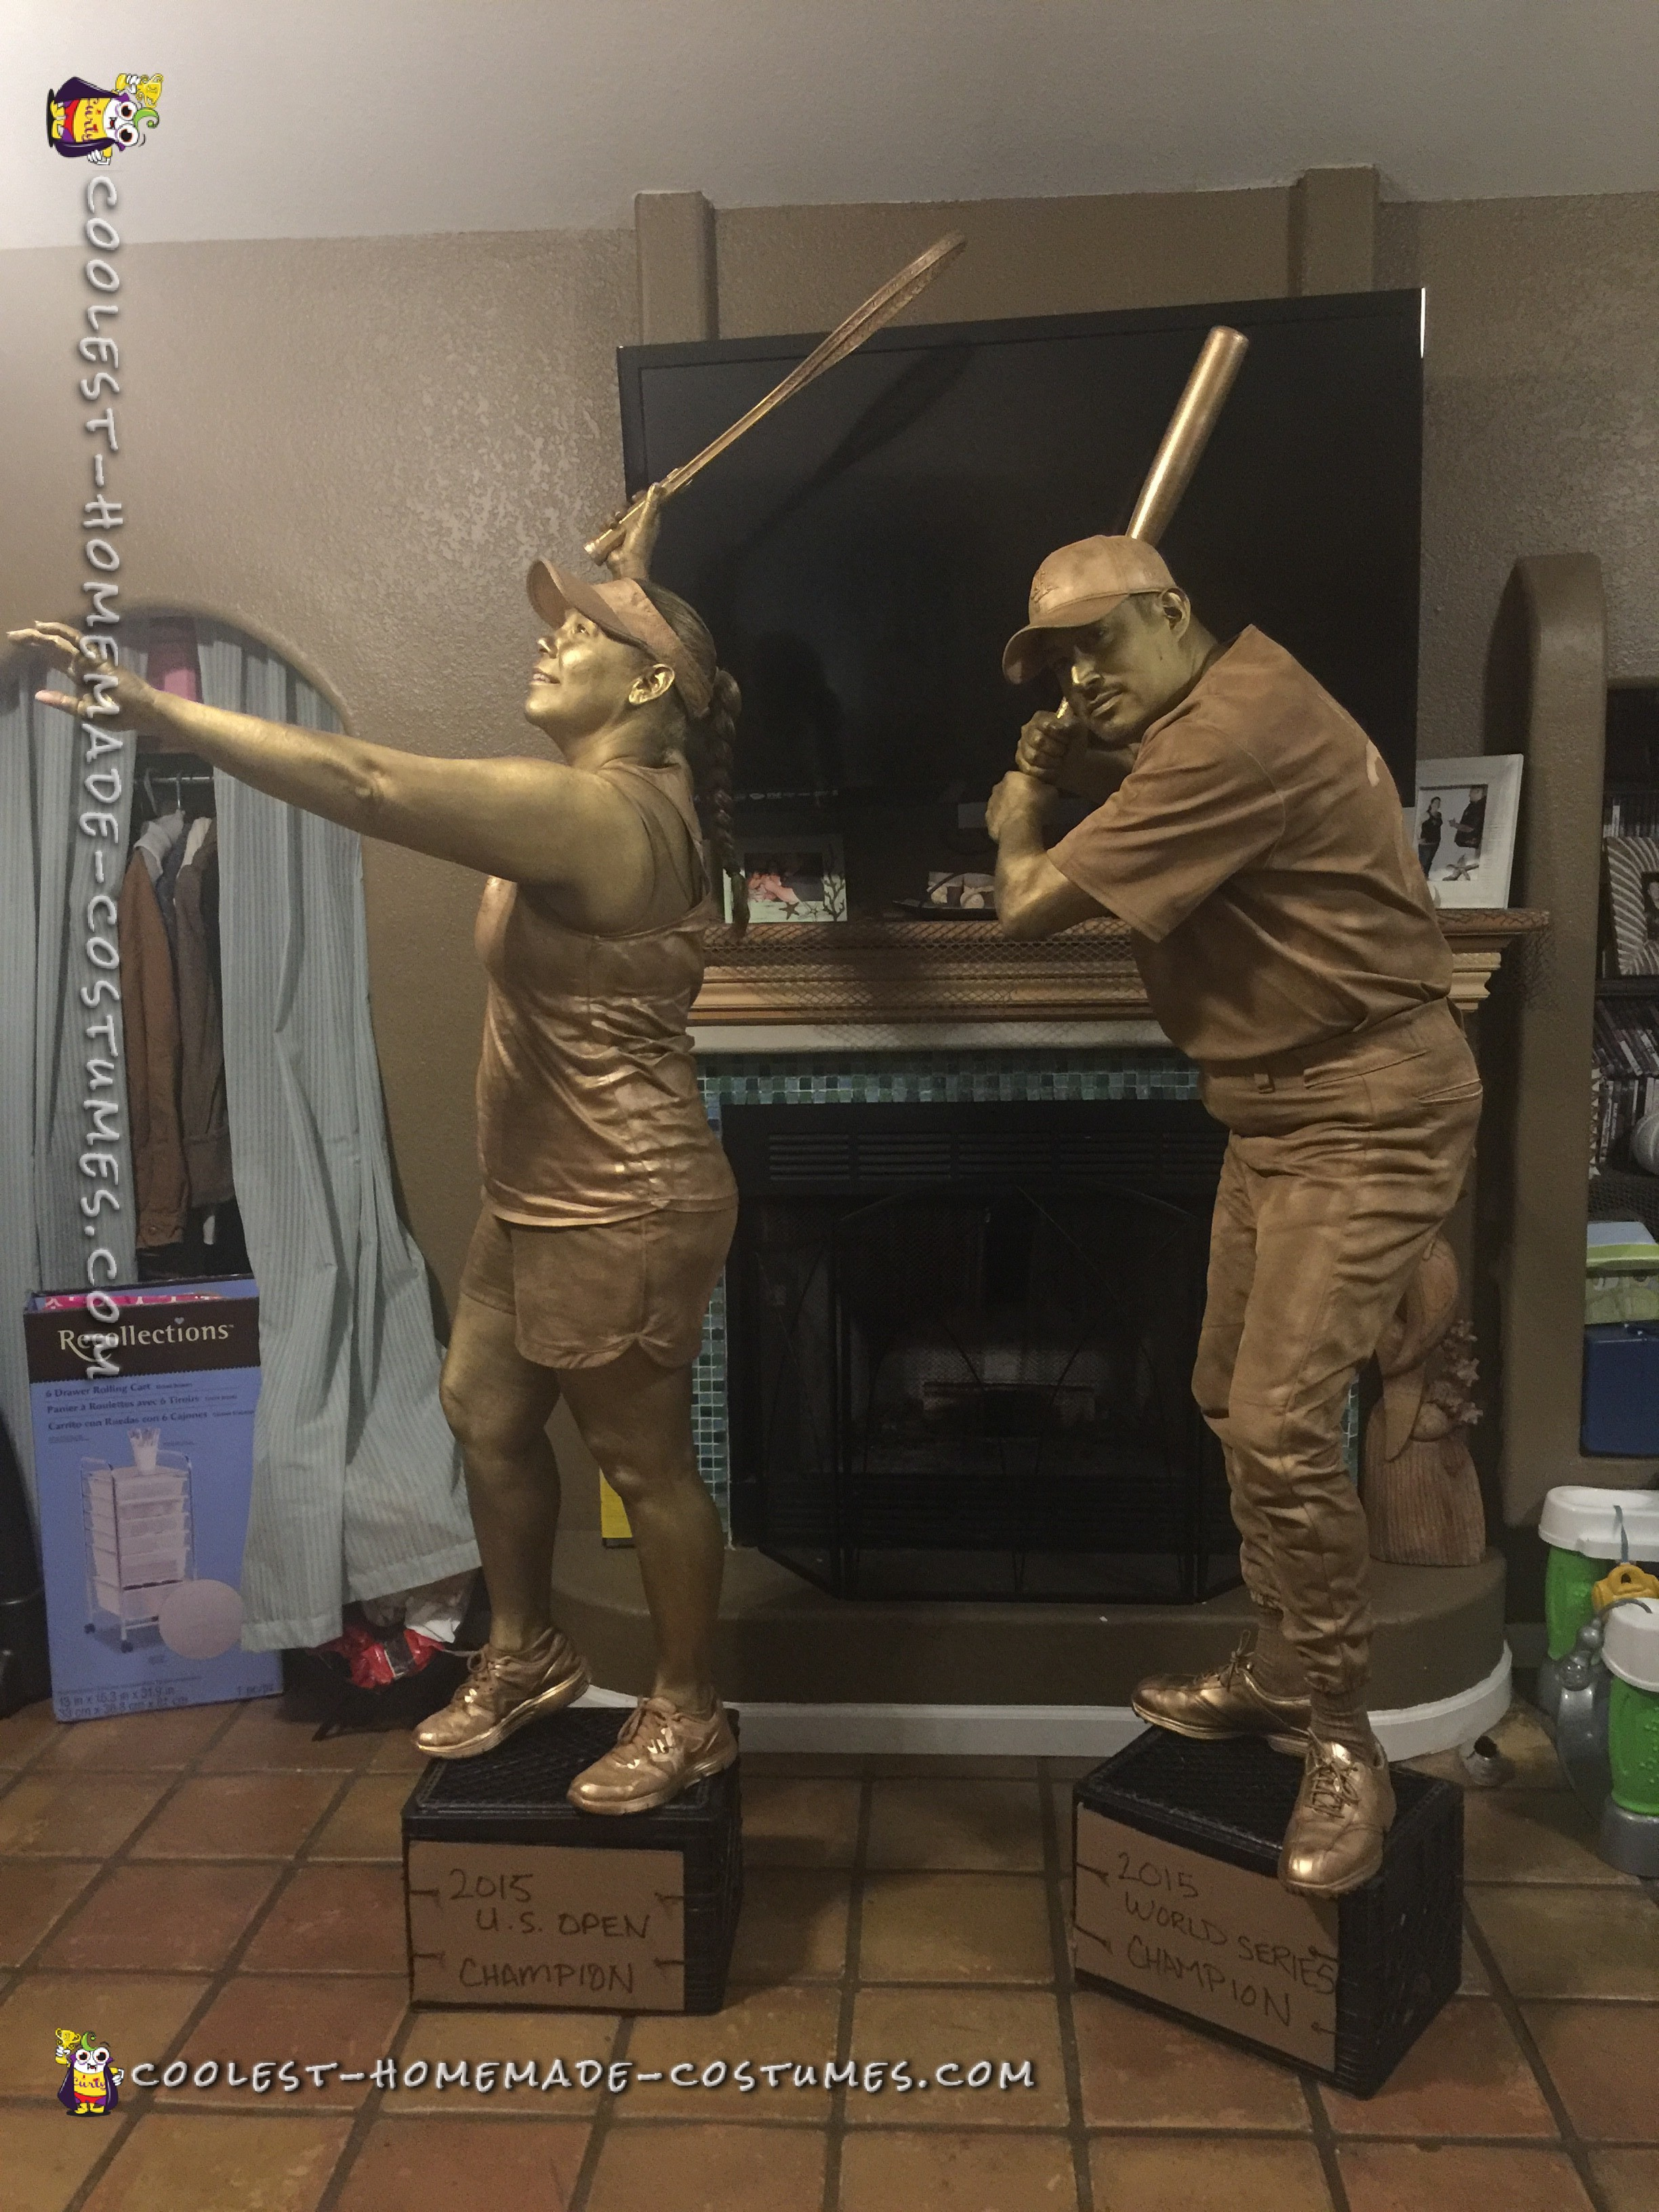 Great Couple Costume - A Couple of Trophies